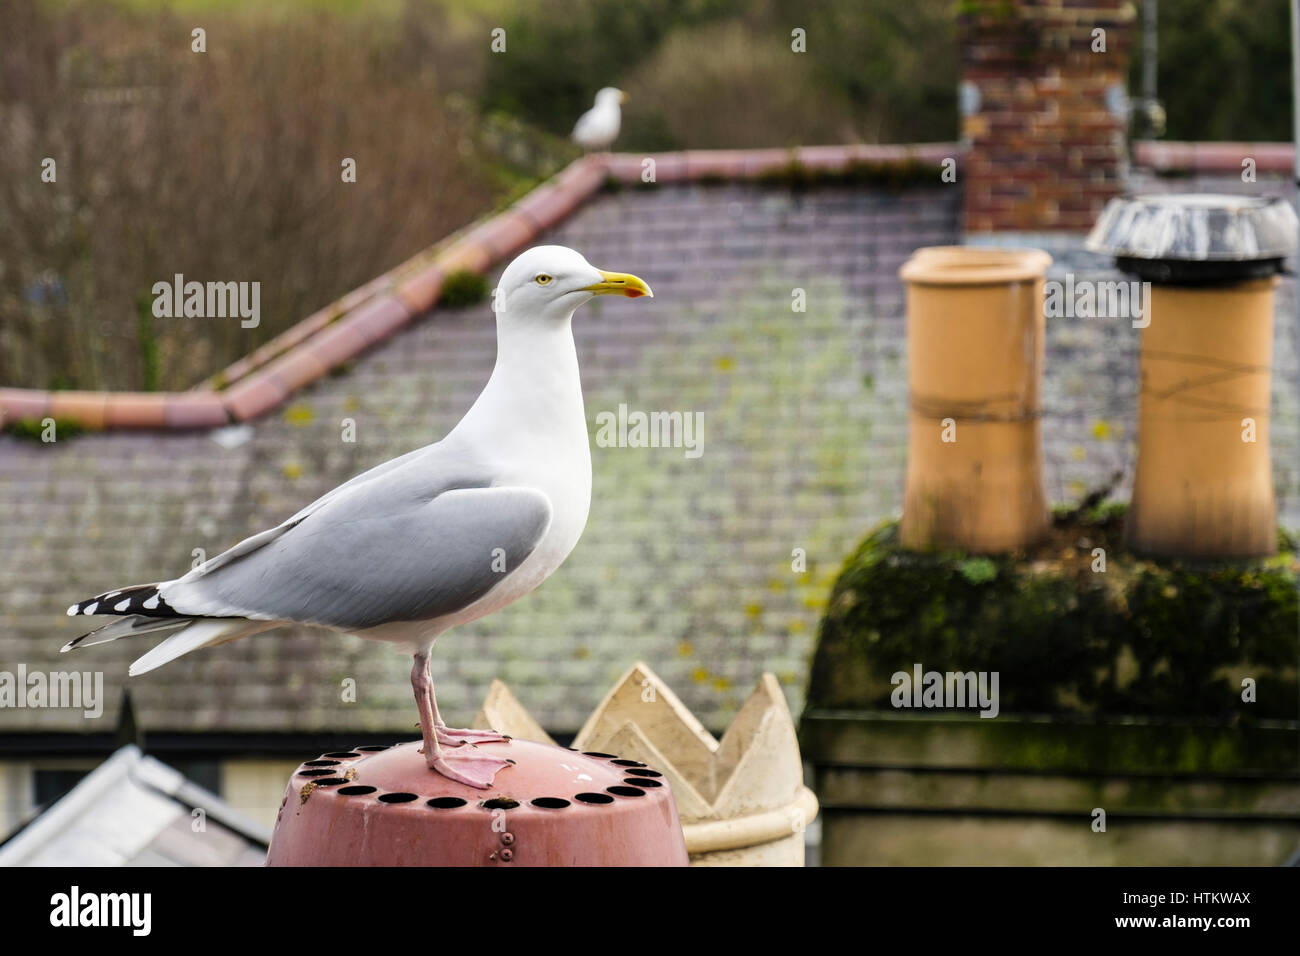 Herring Gull (Larux argentatus) or Seagull on a house rooftop chimney stack in seaside town of Conwy, Wales, UK, - Stock Image